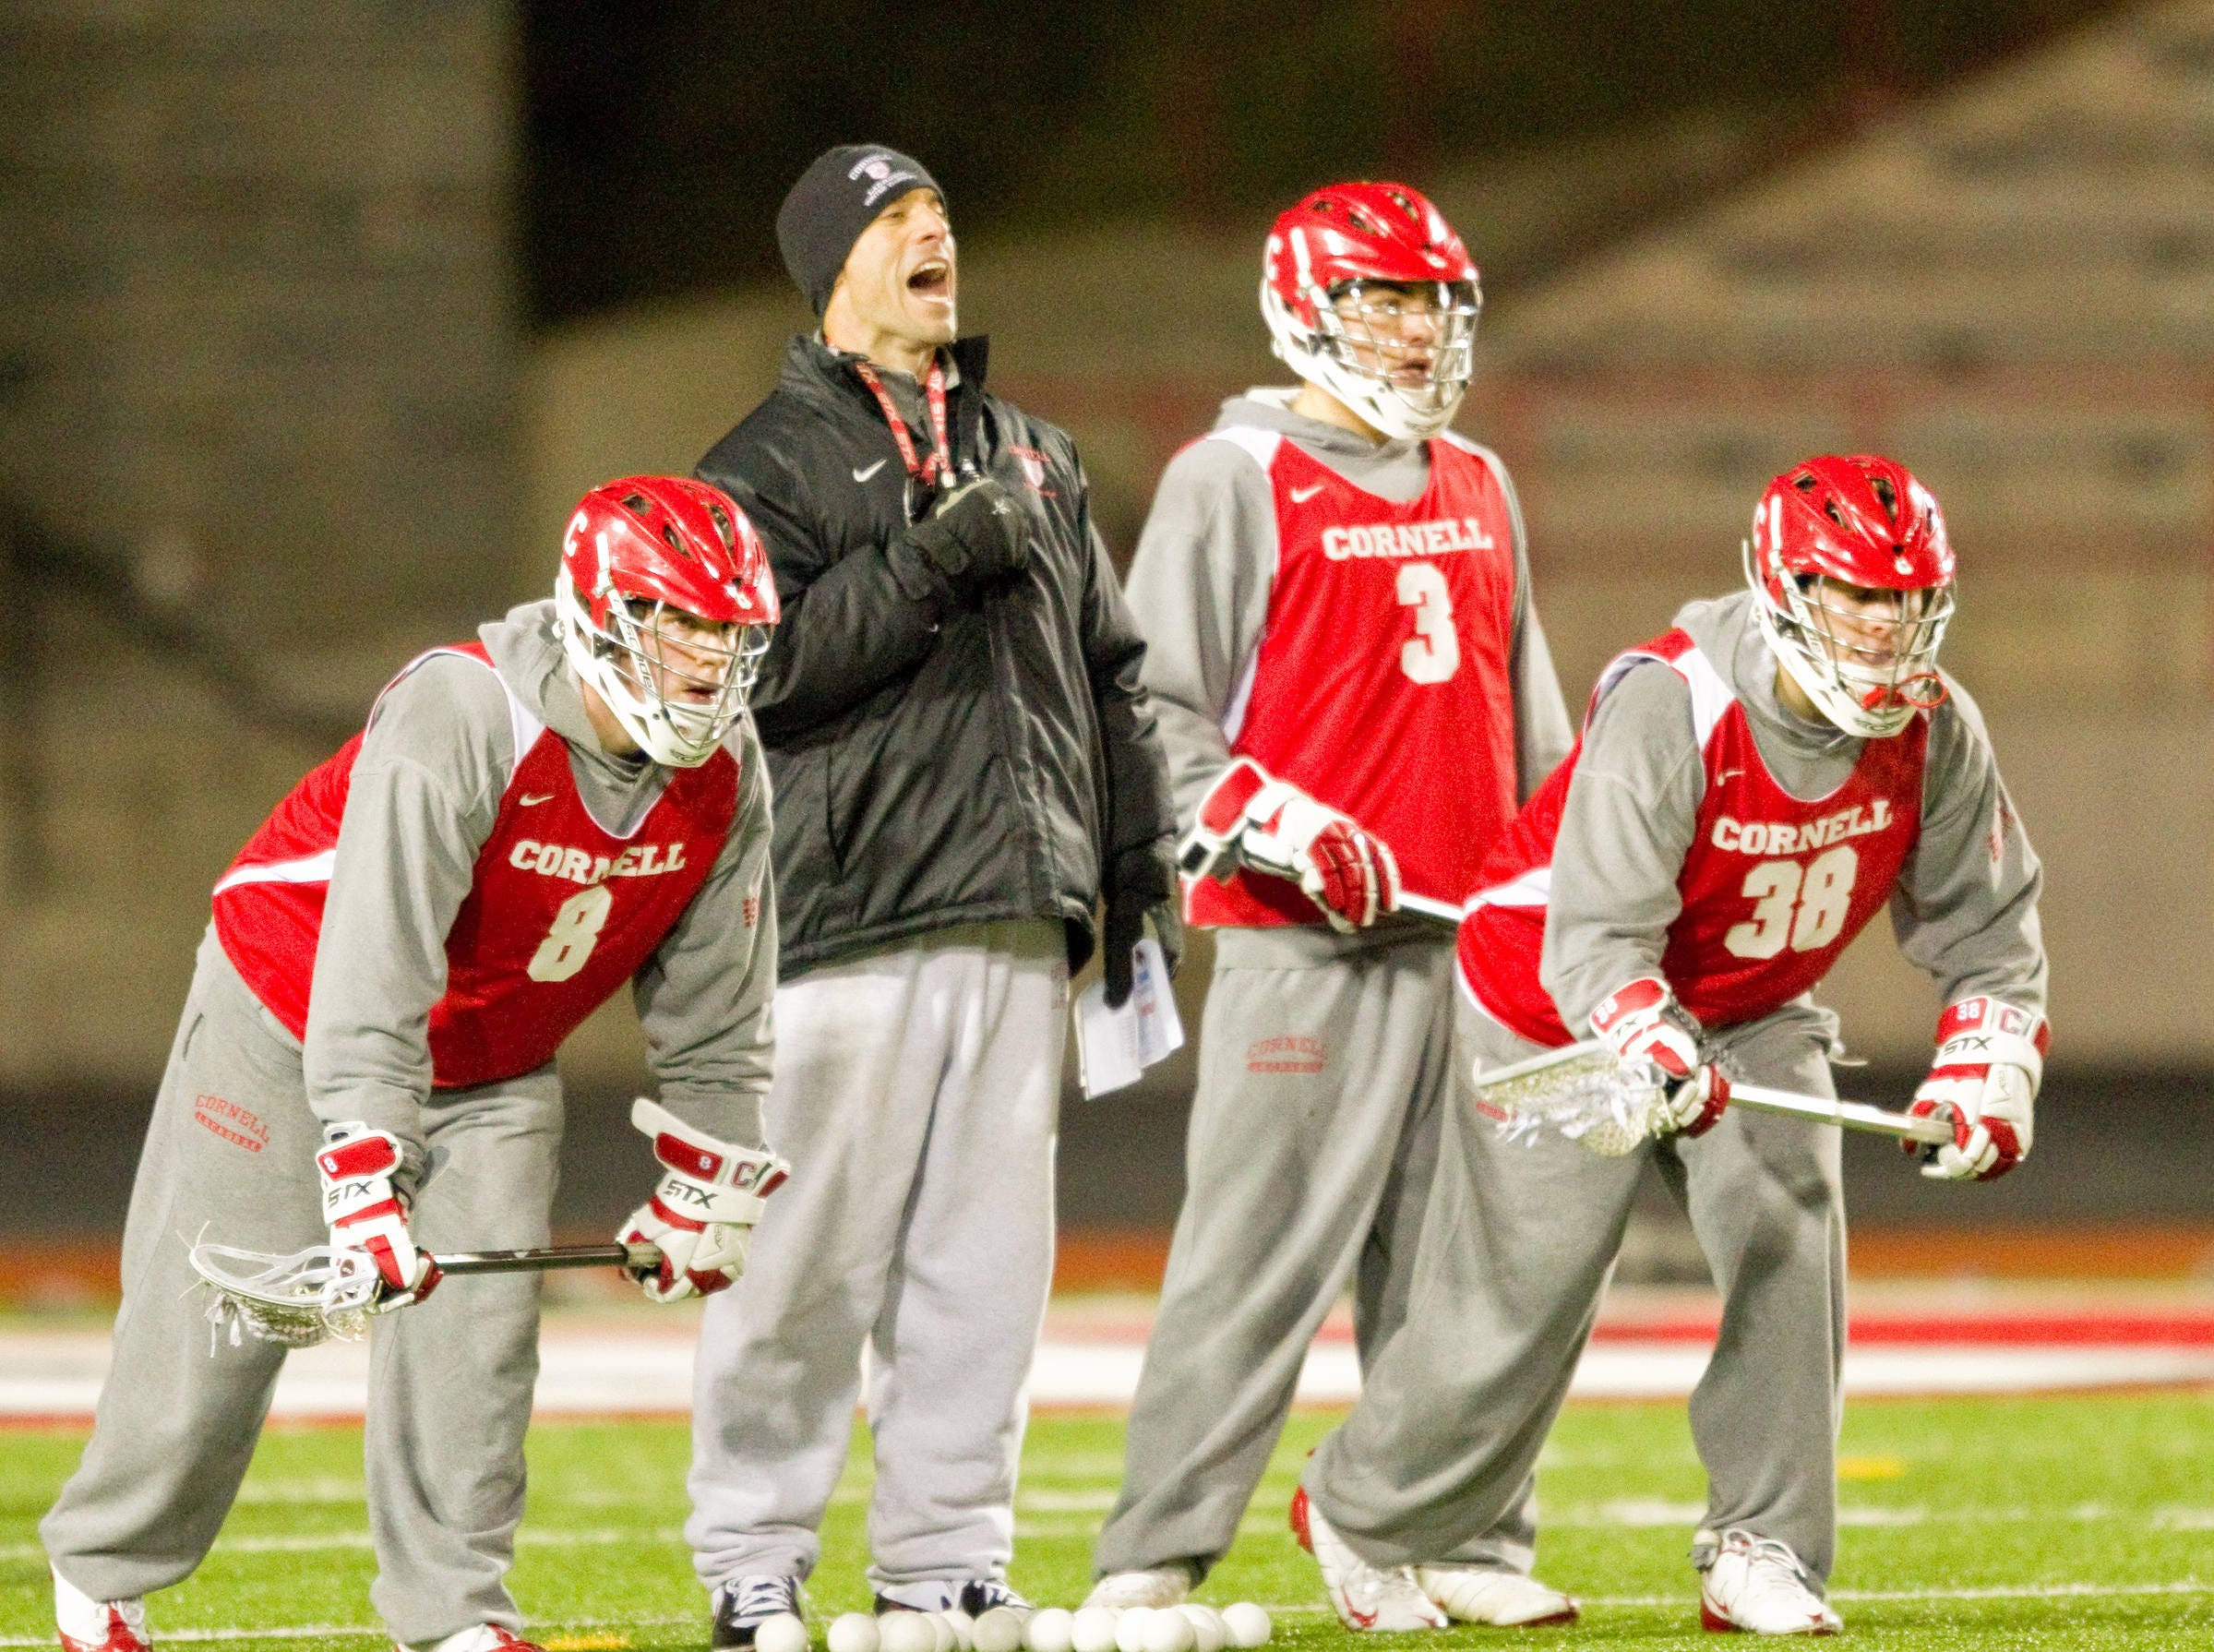 2010: First Cornell Lacrosse practice. February 1, 2010. Pictured: Coach Jeff Tambroni conducts drills with players.